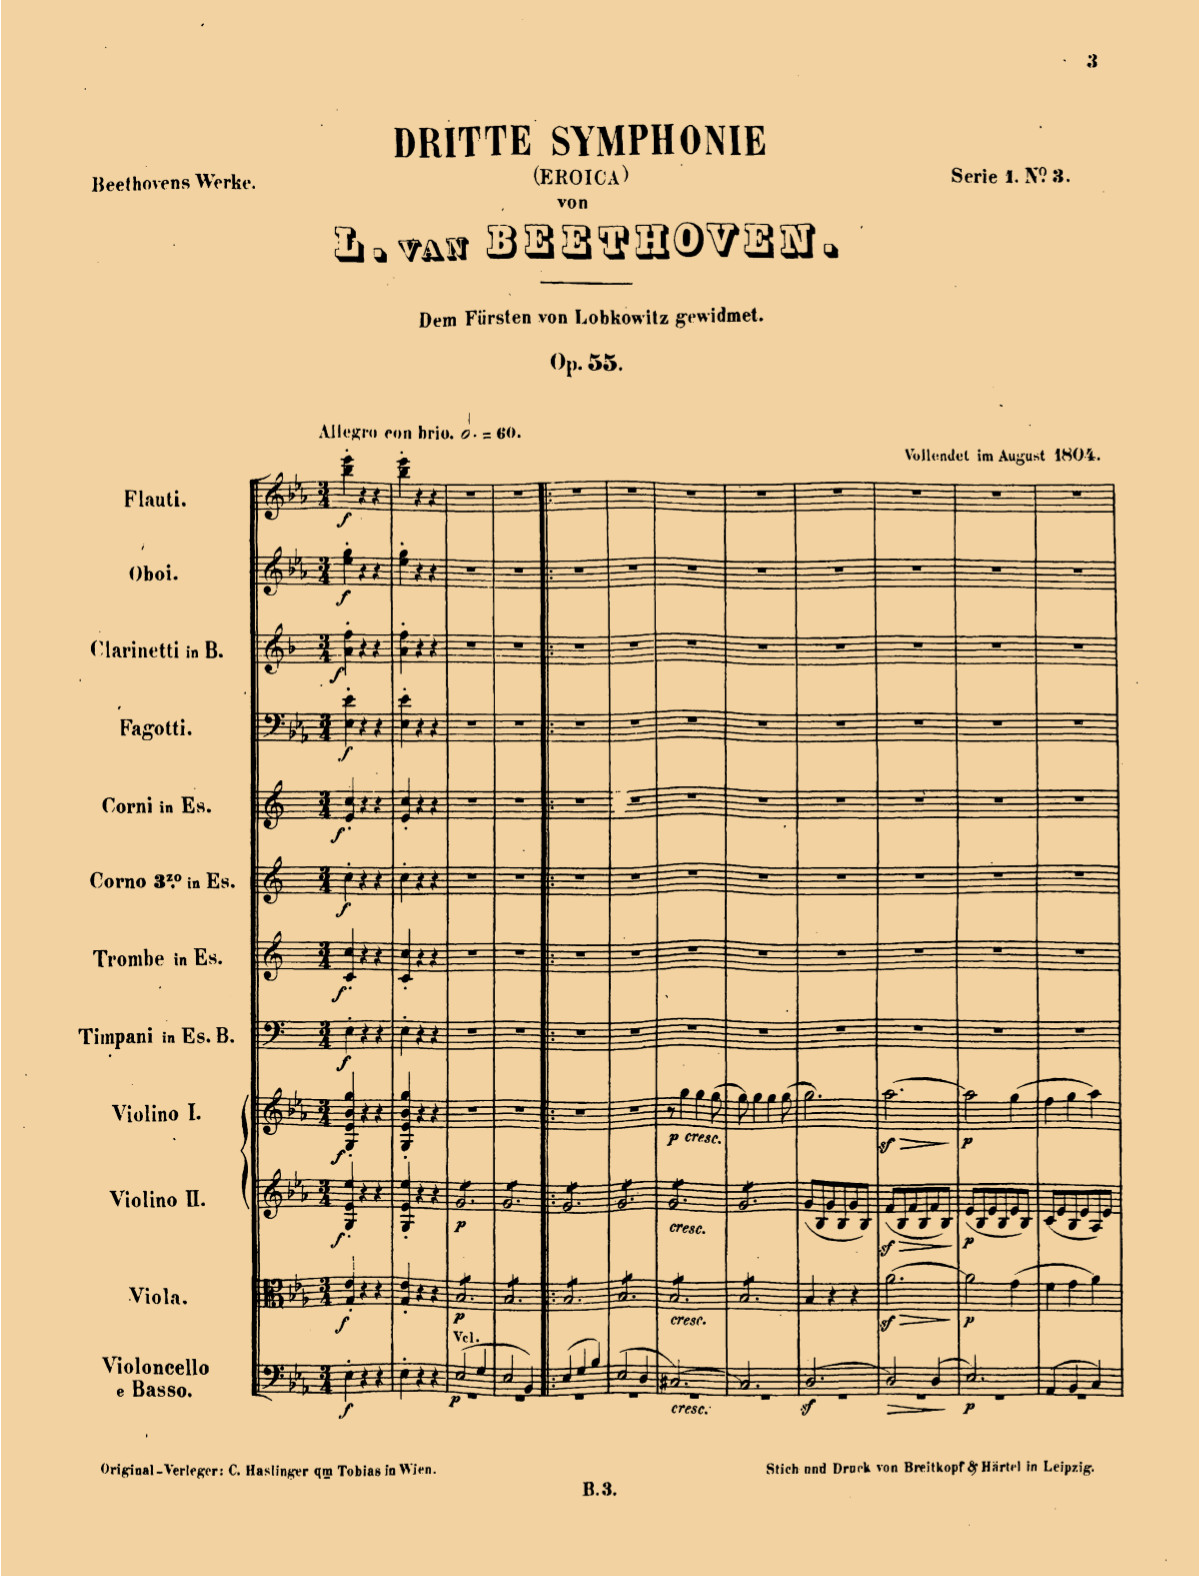 Title page of conductor's score for Beethoven Symphony No. 3